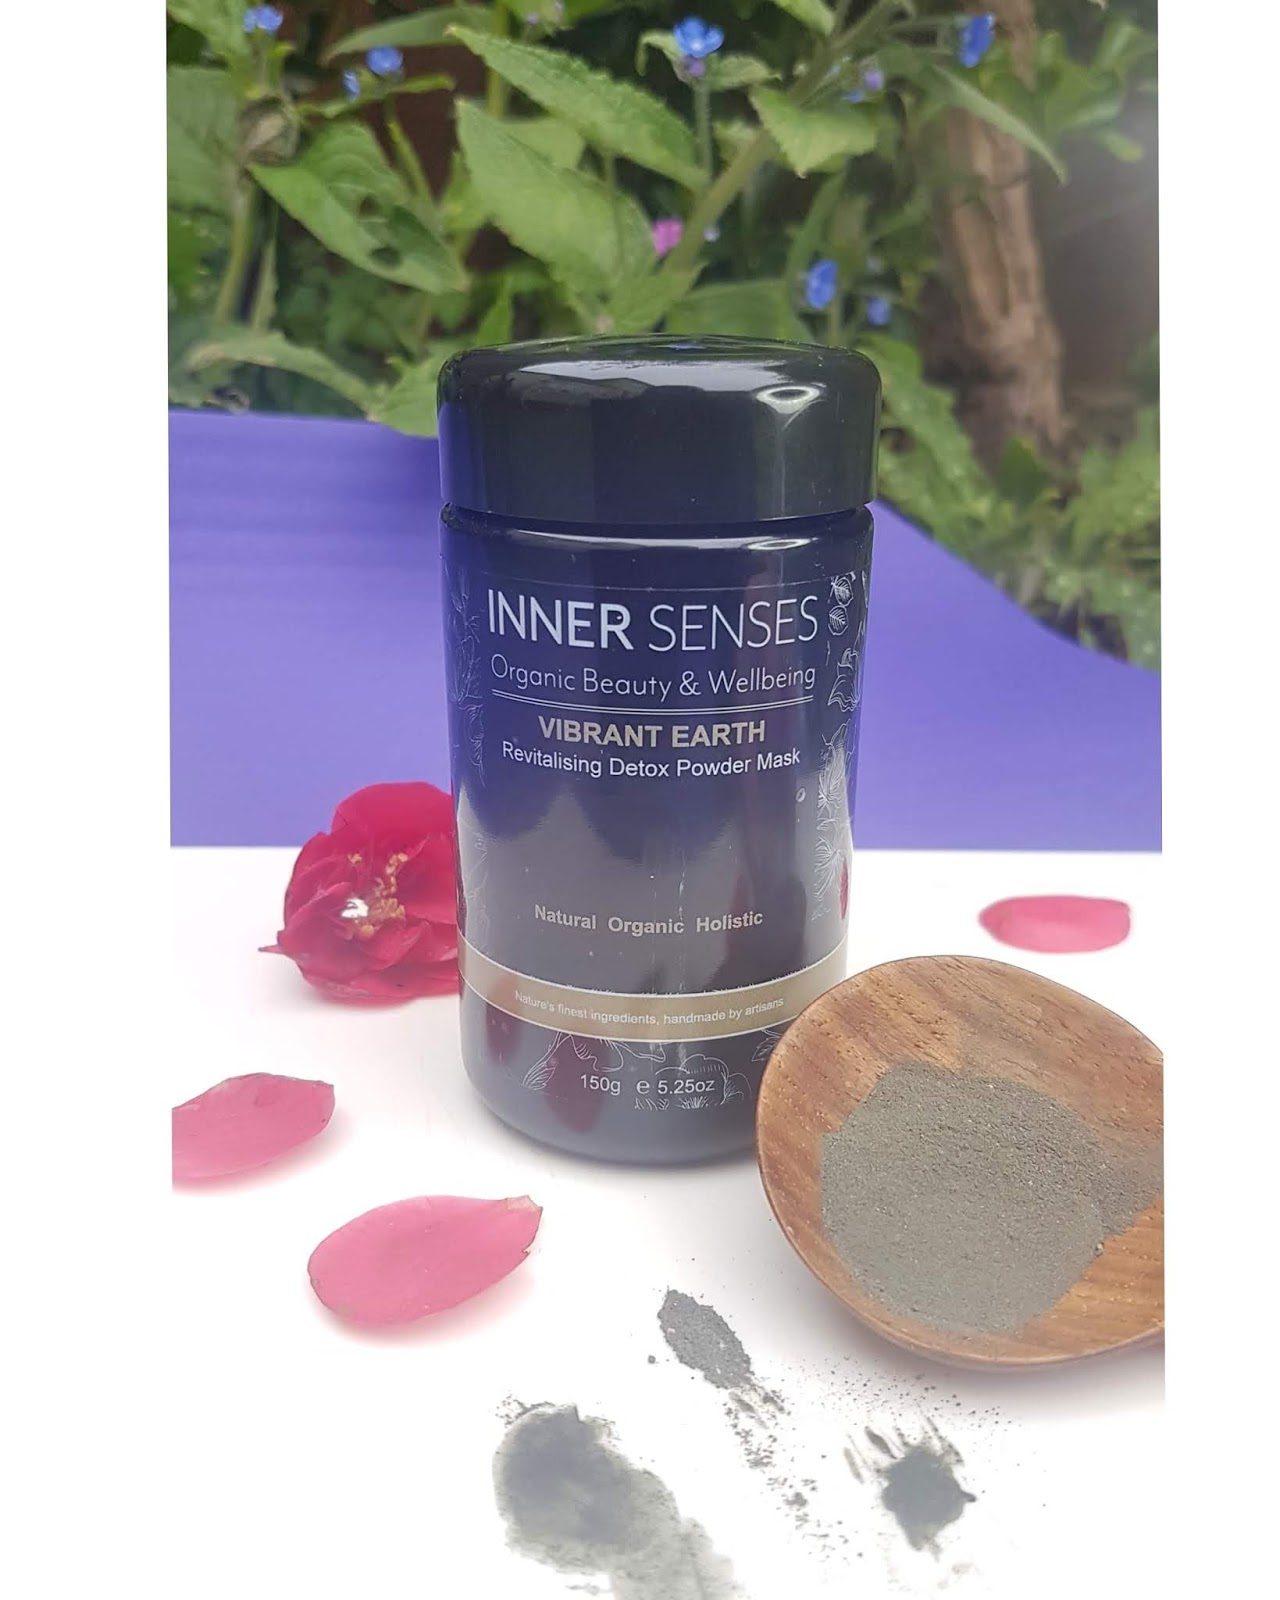 Inner Senses Vibrant Earth Face Mask